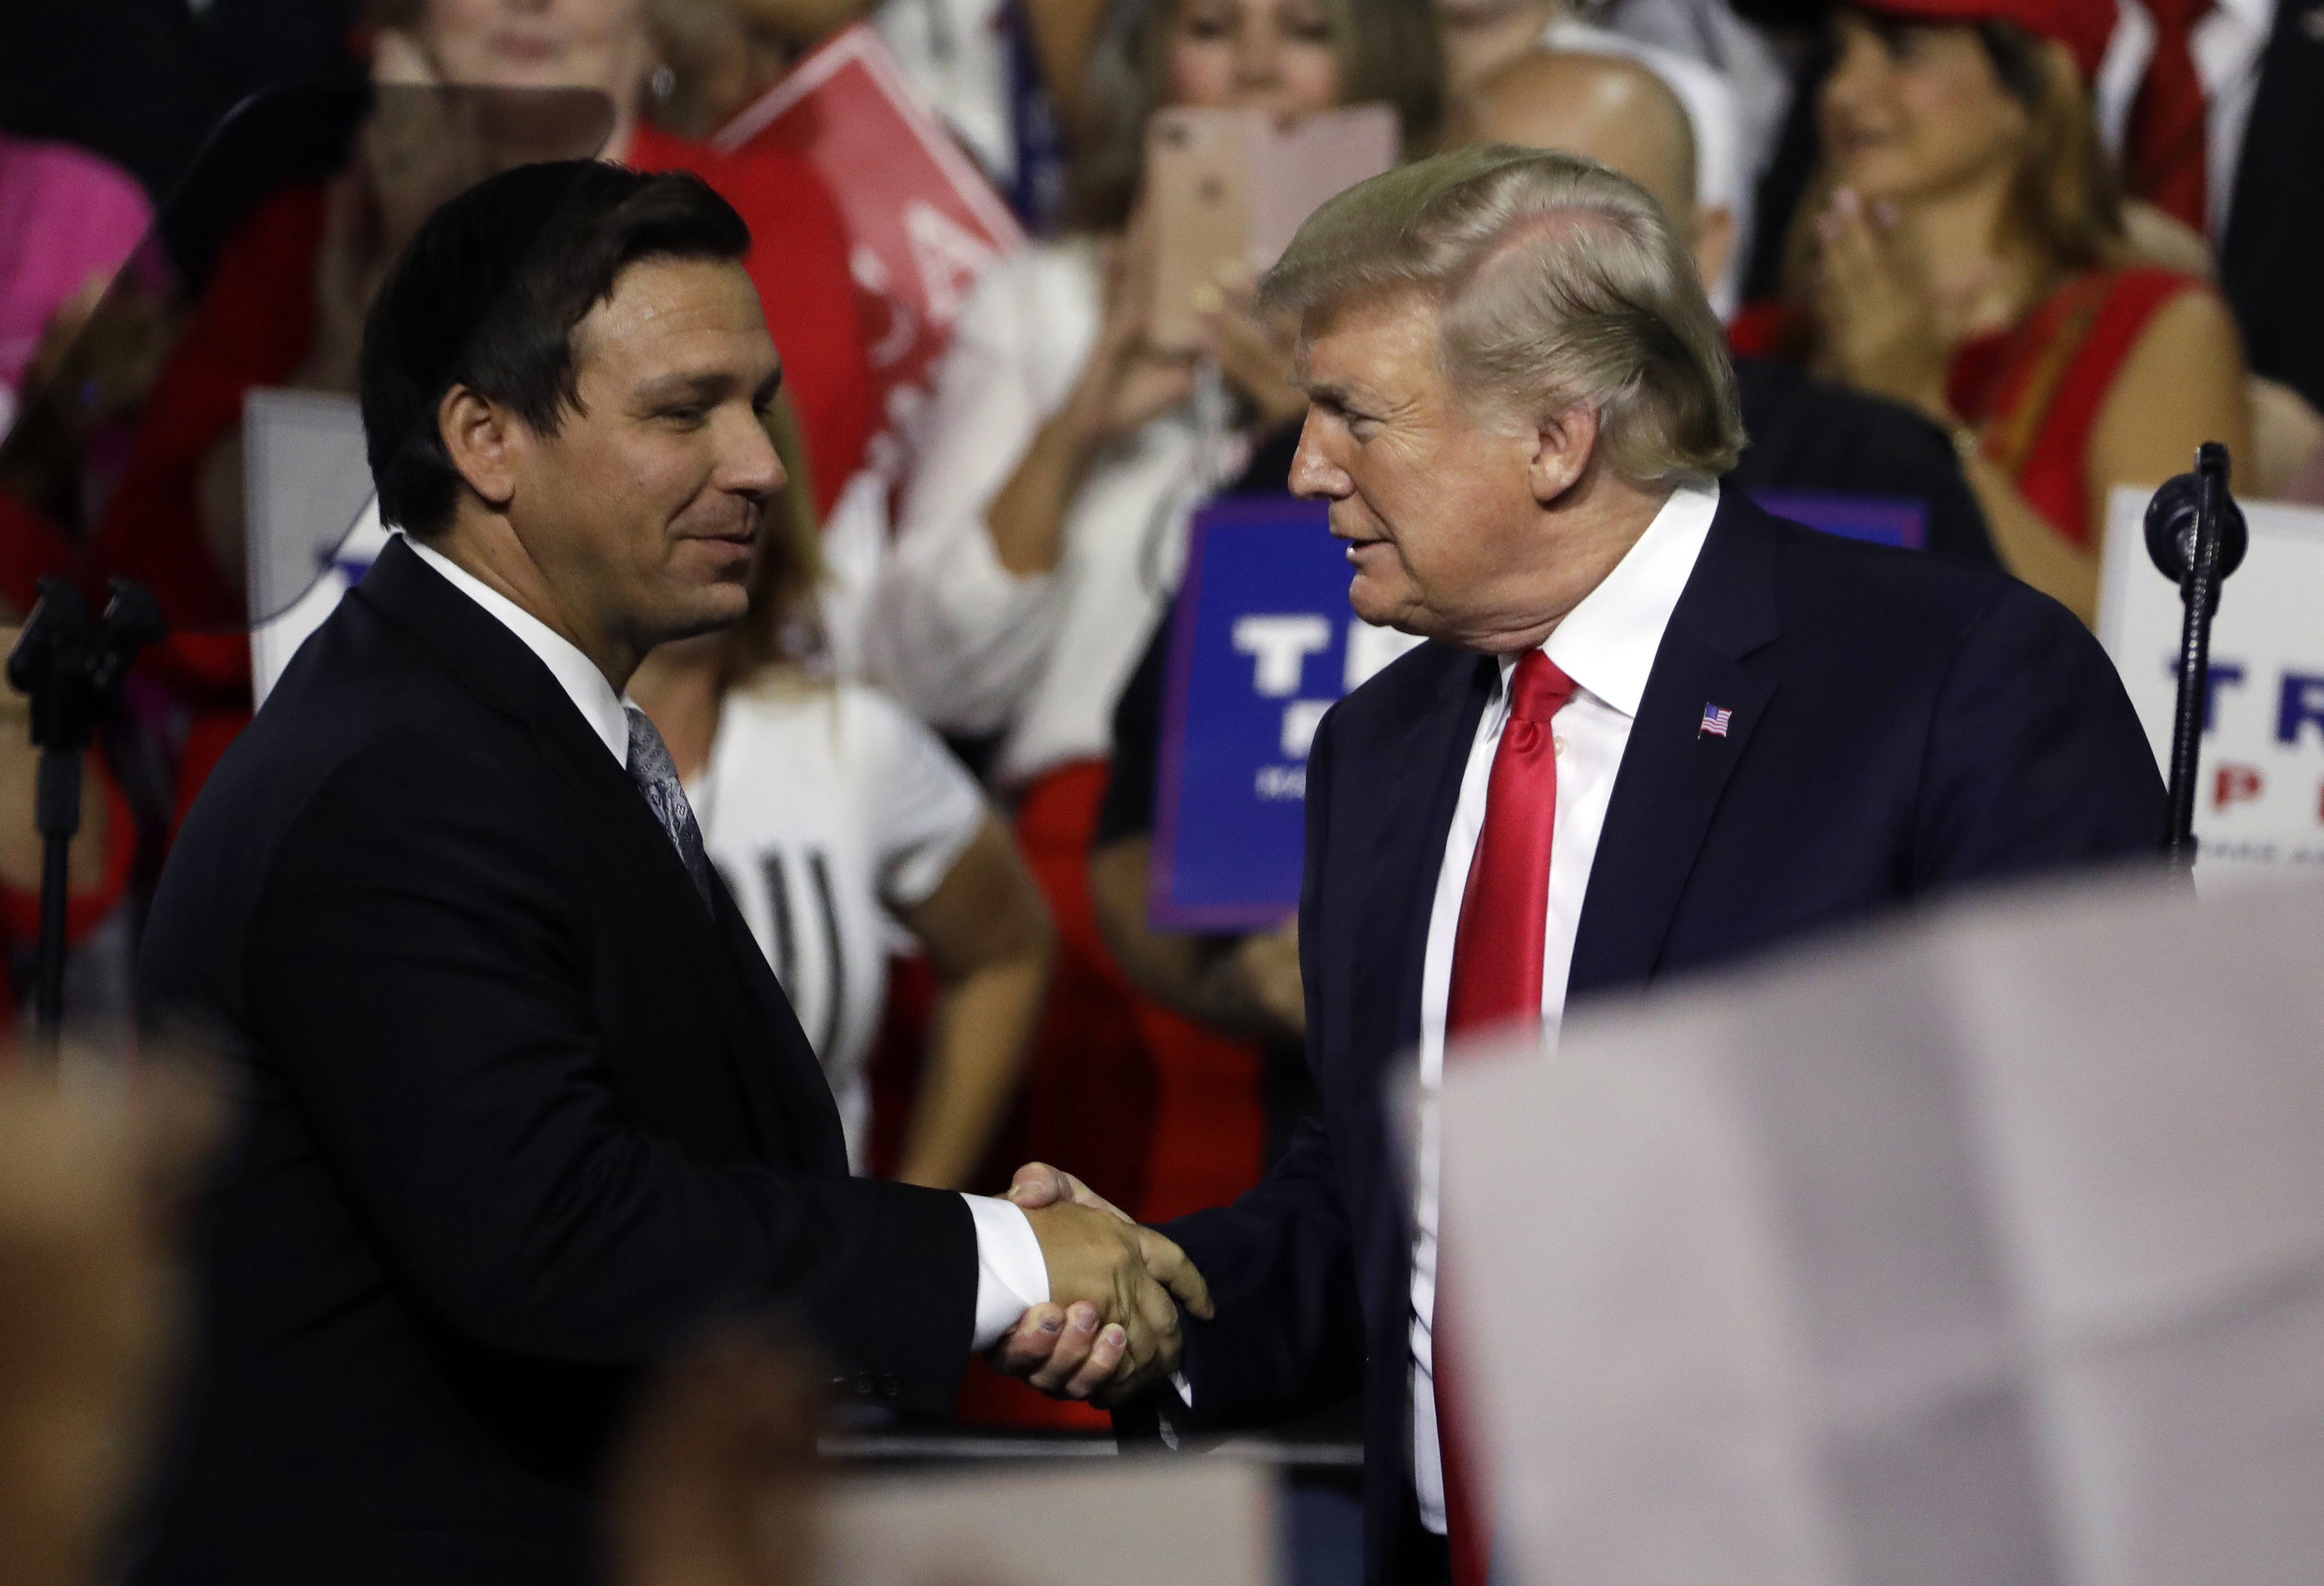 President Donald Trump, right, shakes hands with Florida Republican gubernatorial candidate Ron DeSantis during a rally in Tampa, Fla., July 31, 2018.